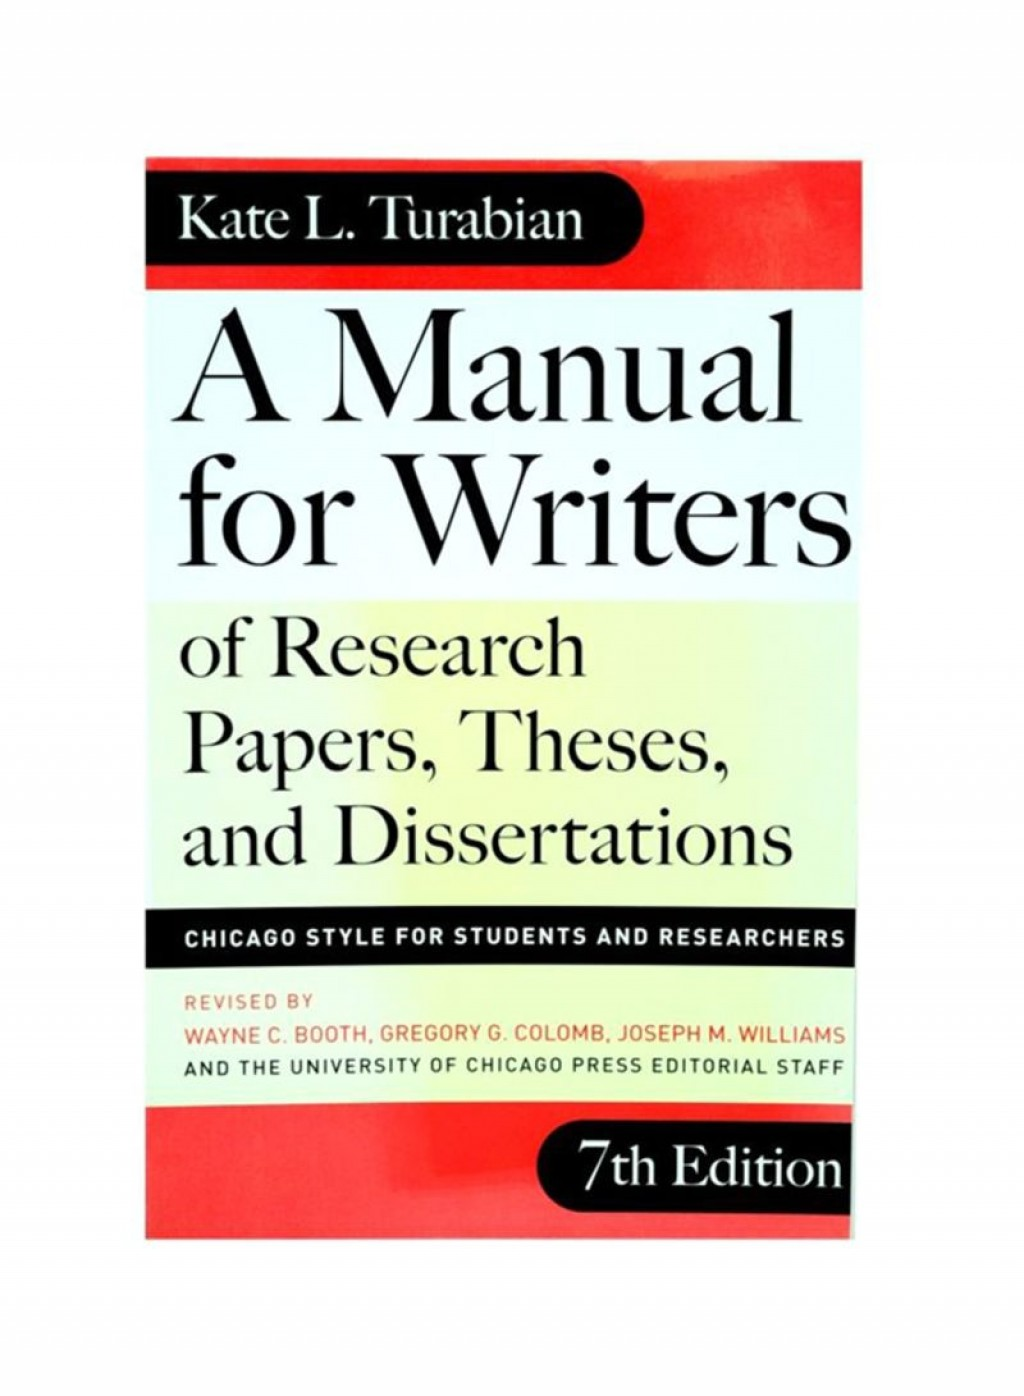 021 Research Paper N21270079a 1 Manual For Writers Of Papers Theses And Magnificent Dissertations A 8th Ed Pdf Large